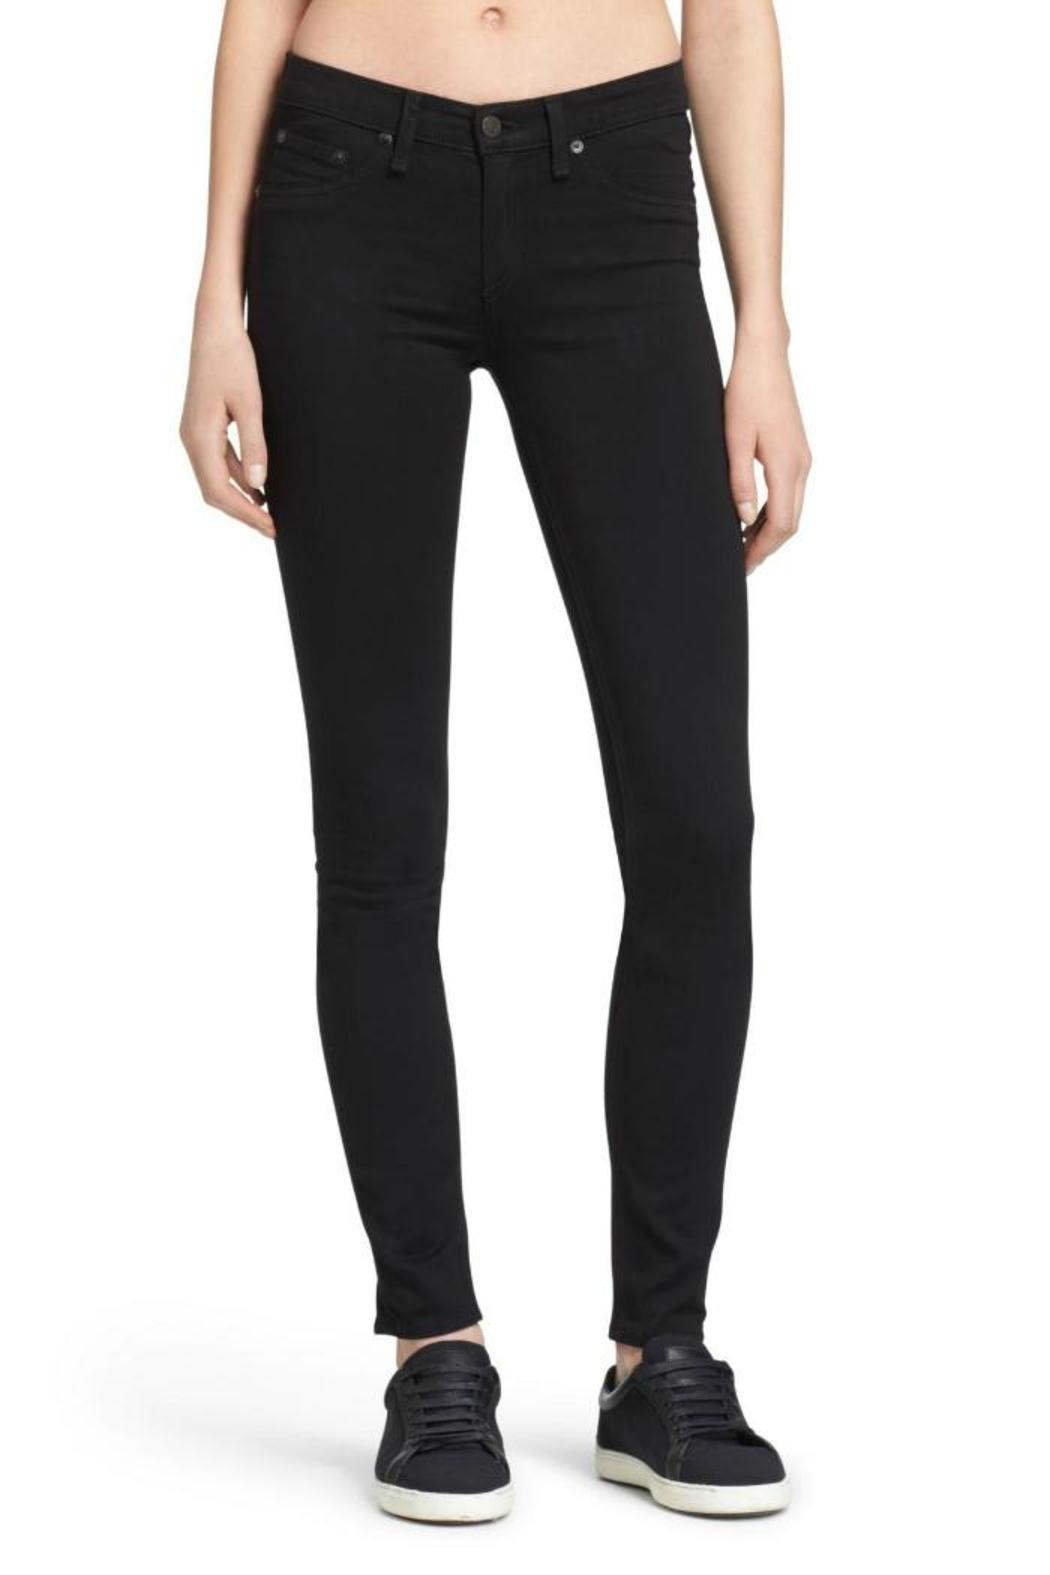 Rag & Bone Legging In Black Plush Jeans - Main Image